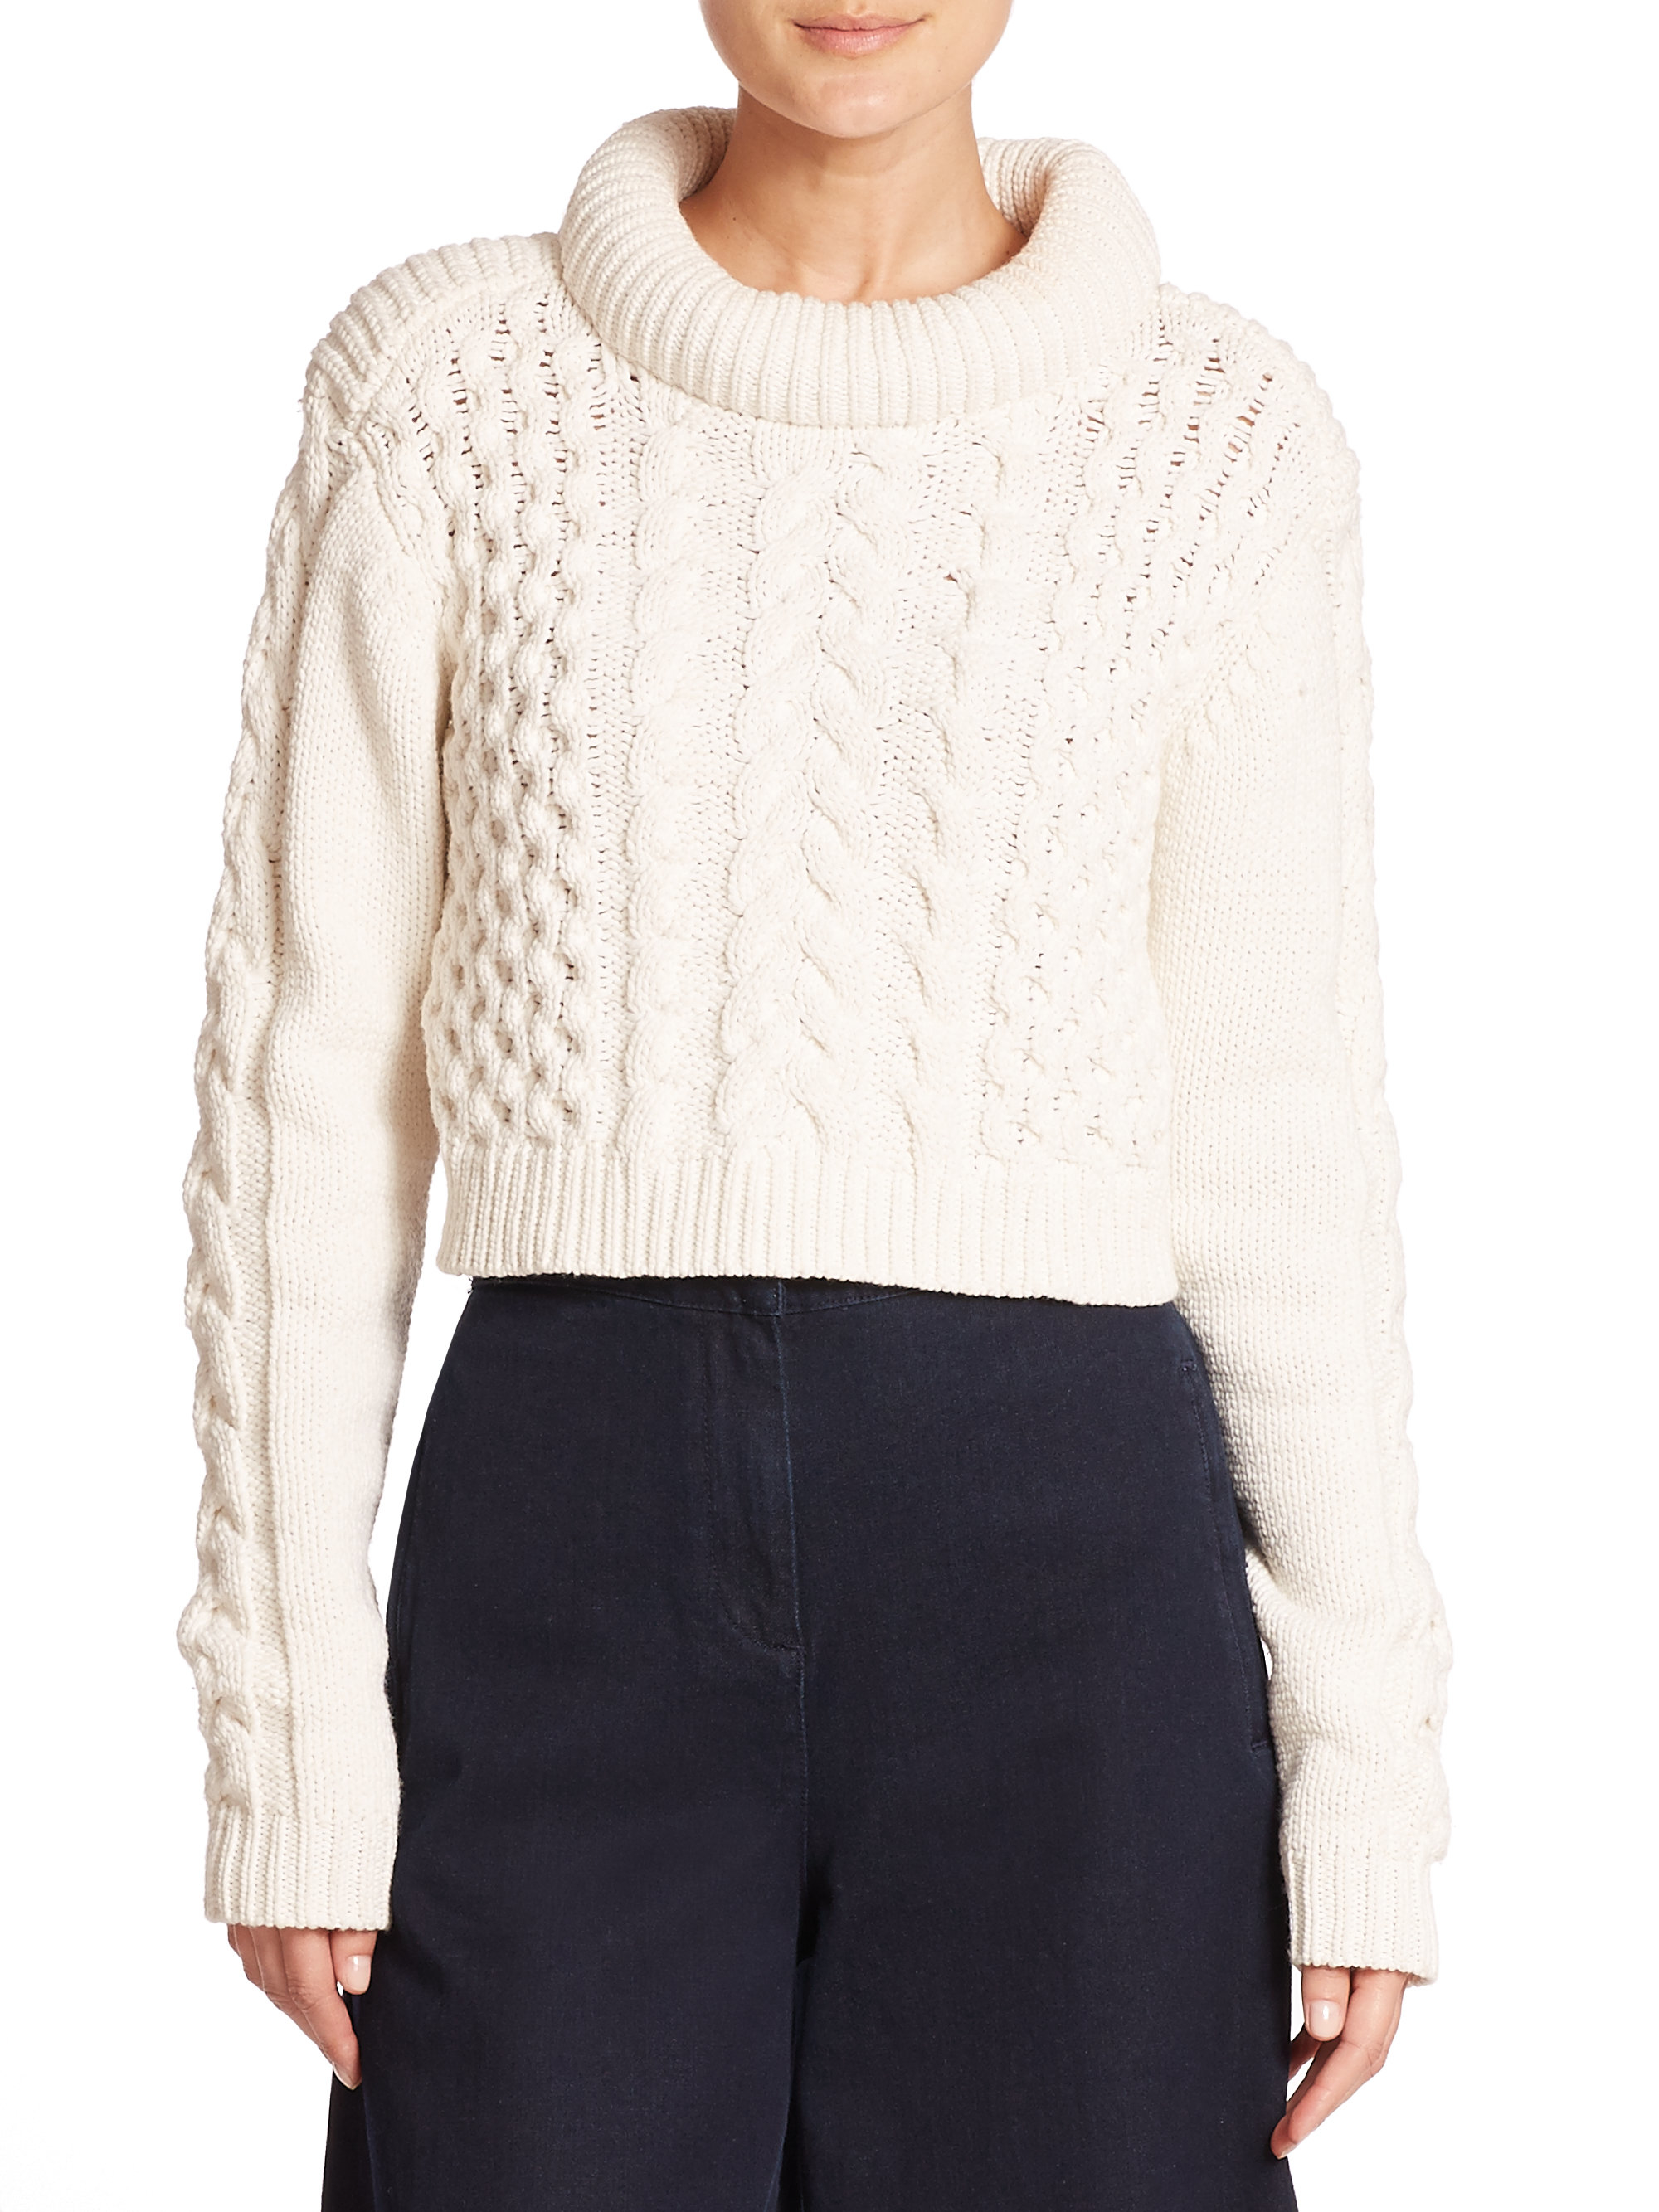 Tibi Chunky Cable Knit Cropped Sweater in White | Lyst